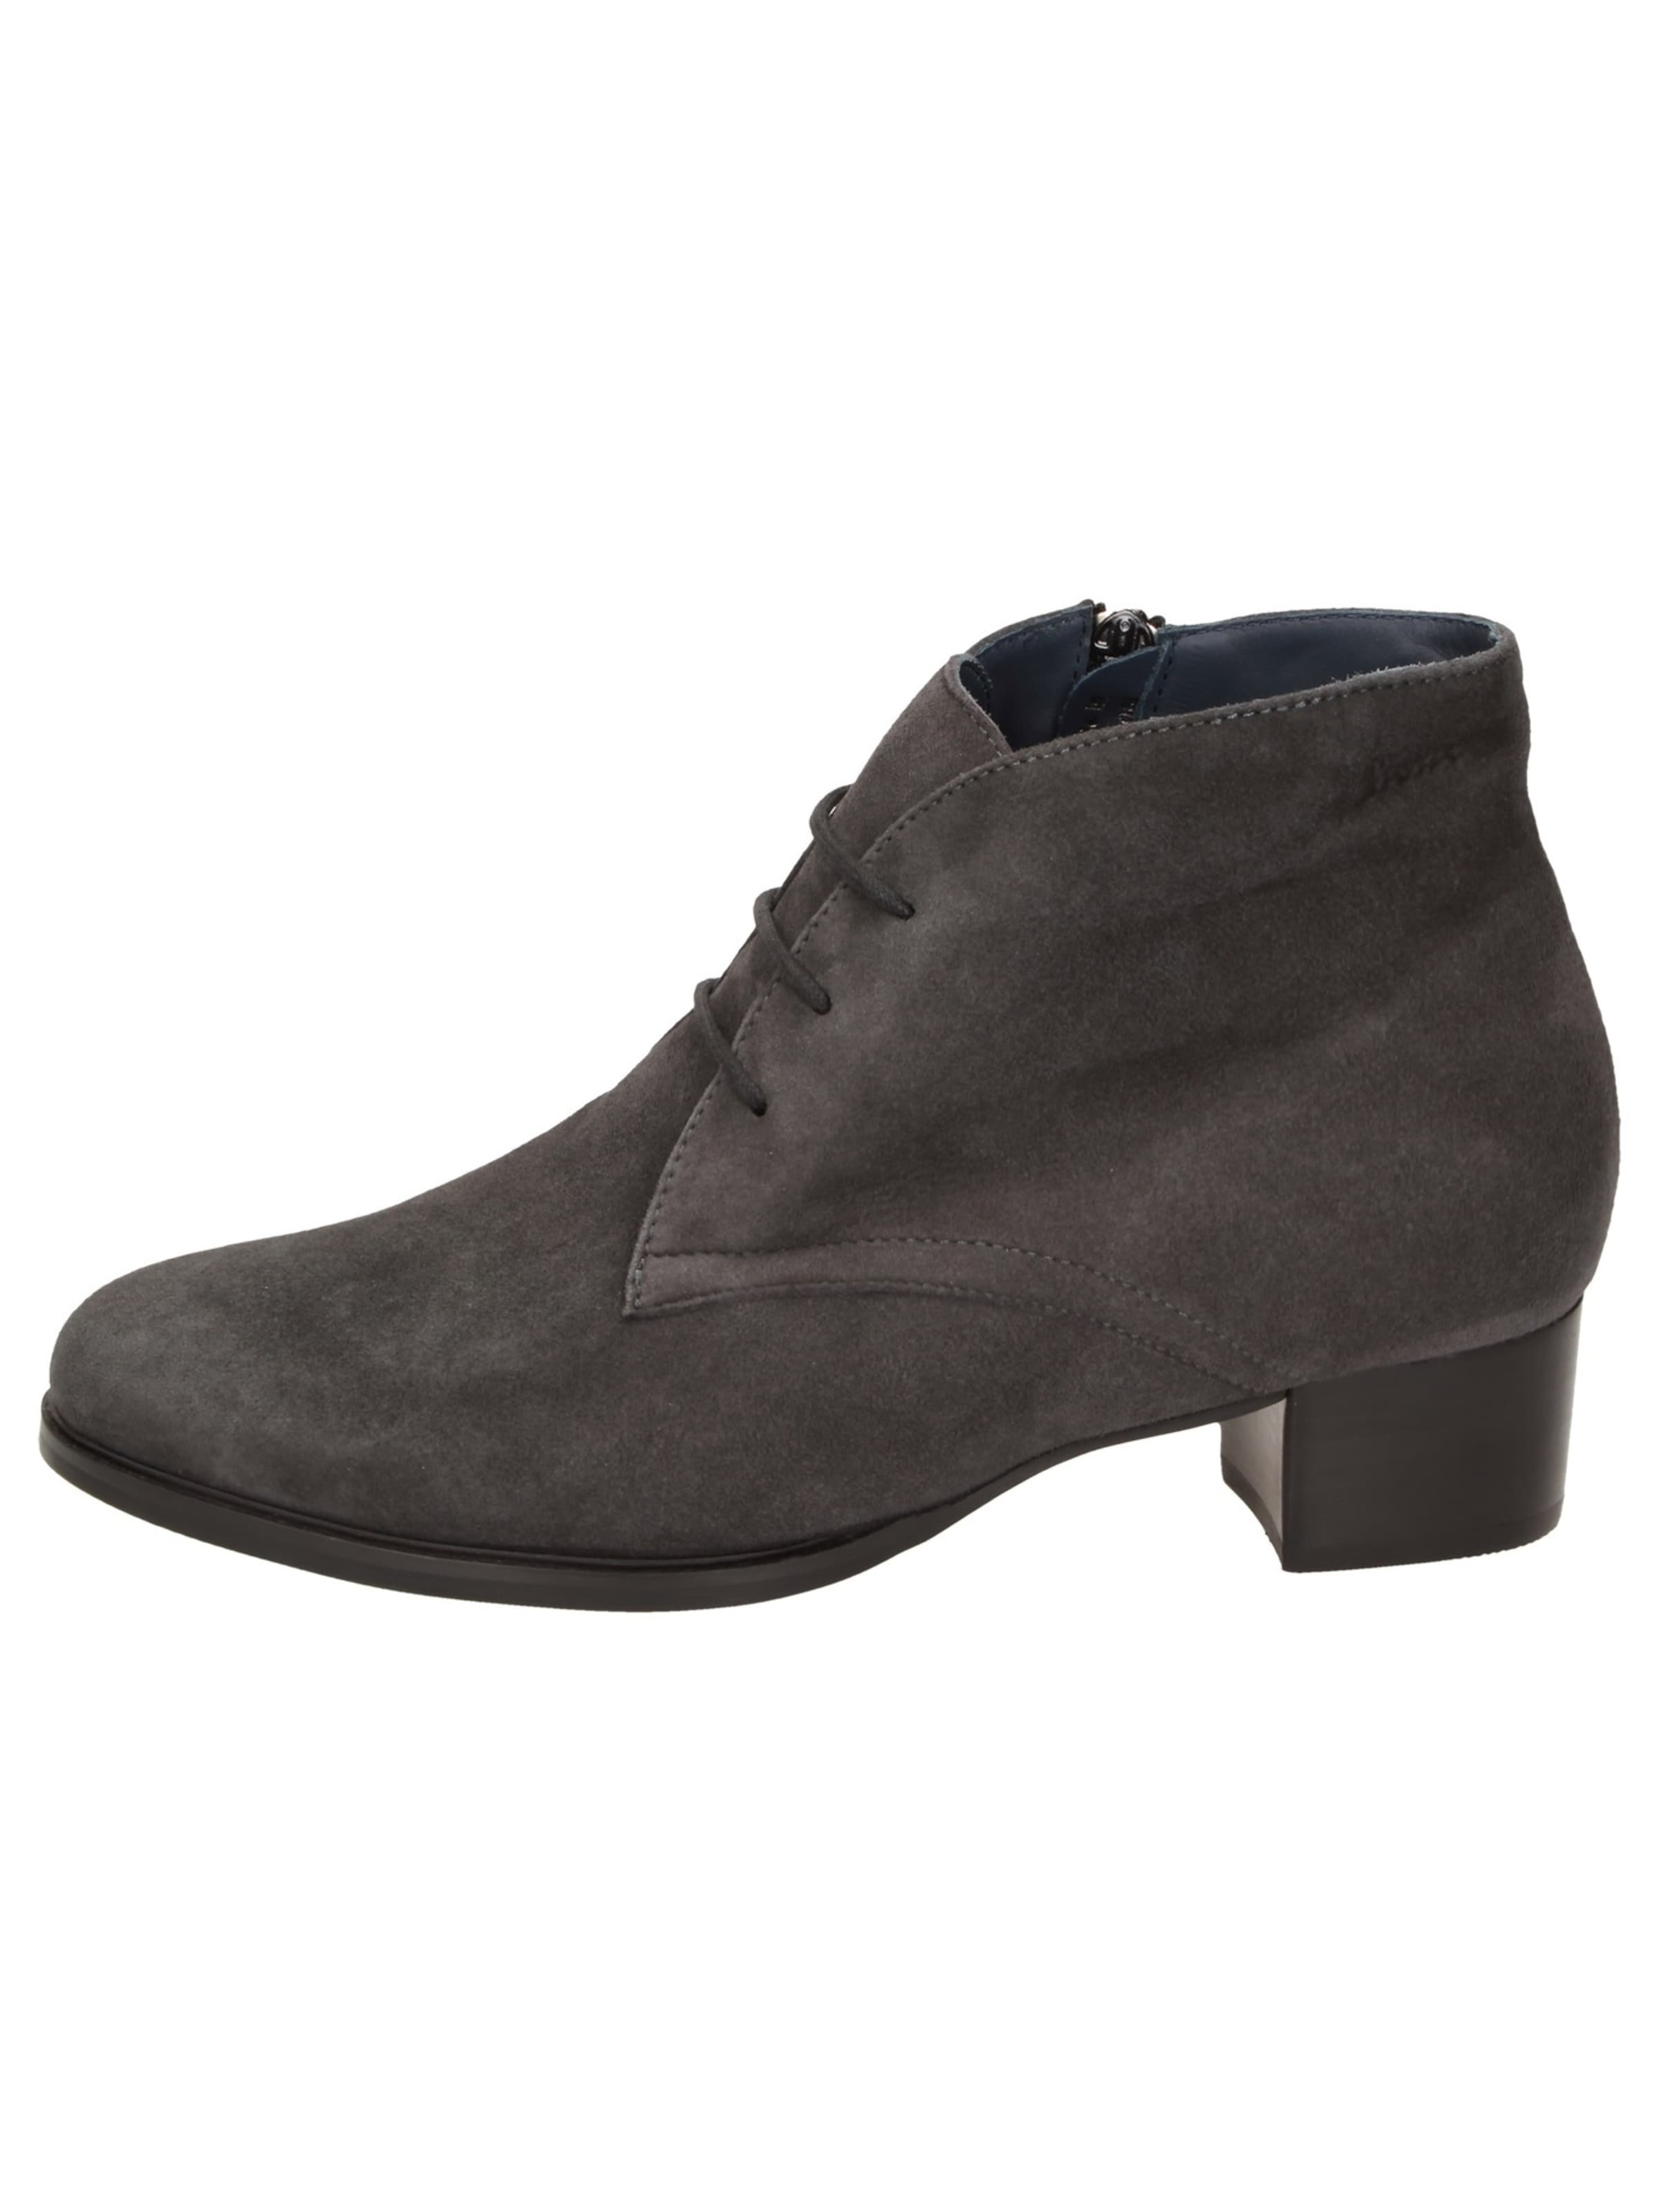 Sioux Hilgrid 700 Taupe Stiefelette ' h In TlcuFJ31K5